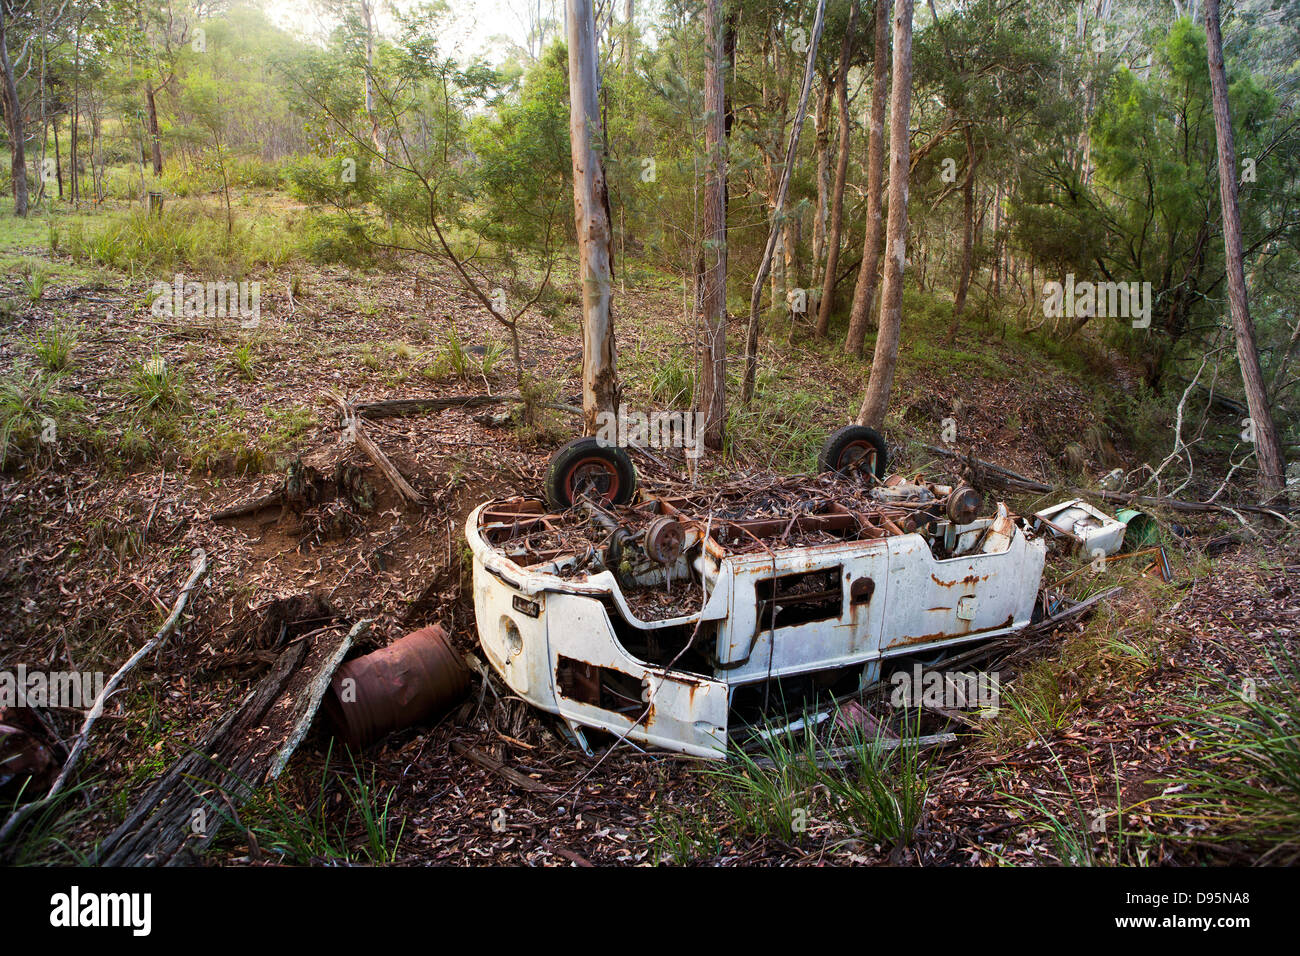 Abandoned white rusting camper van wreck in a wood in the Australian bush - Stock Image